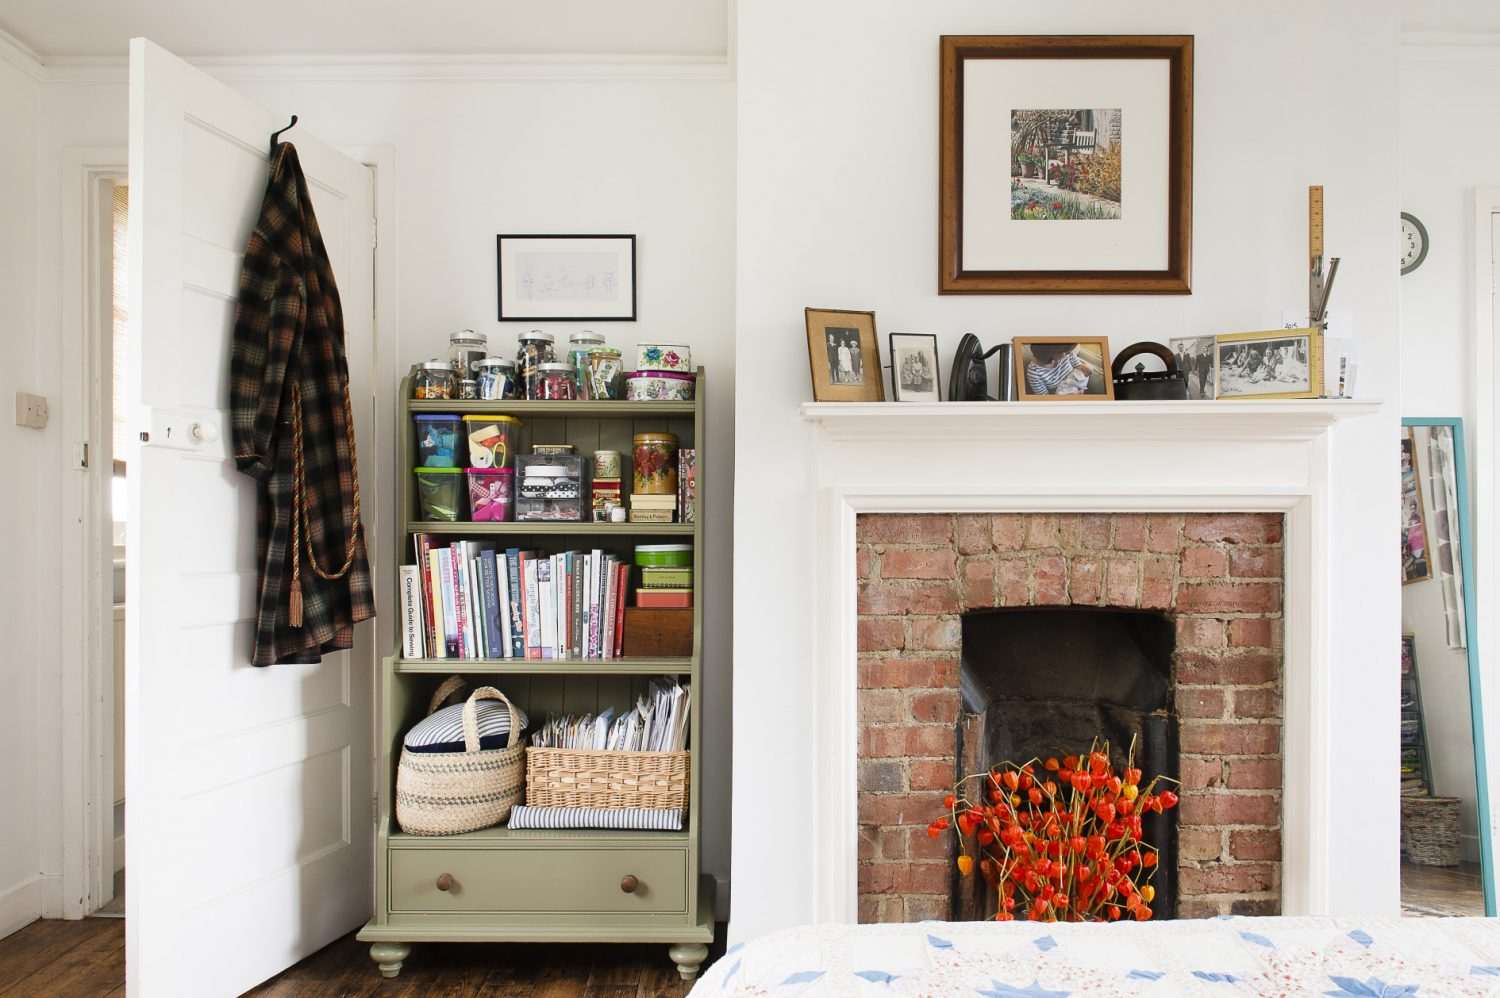 A shelving unit painted in muted, vintage green is used to keep Claire's collection of buttons, ribbon and other sewing items tidy. Claire made the patchwork quilt herself and has filled another unused fireplace with Chinese Lanterns to add some colour and a sense of warmth to the room